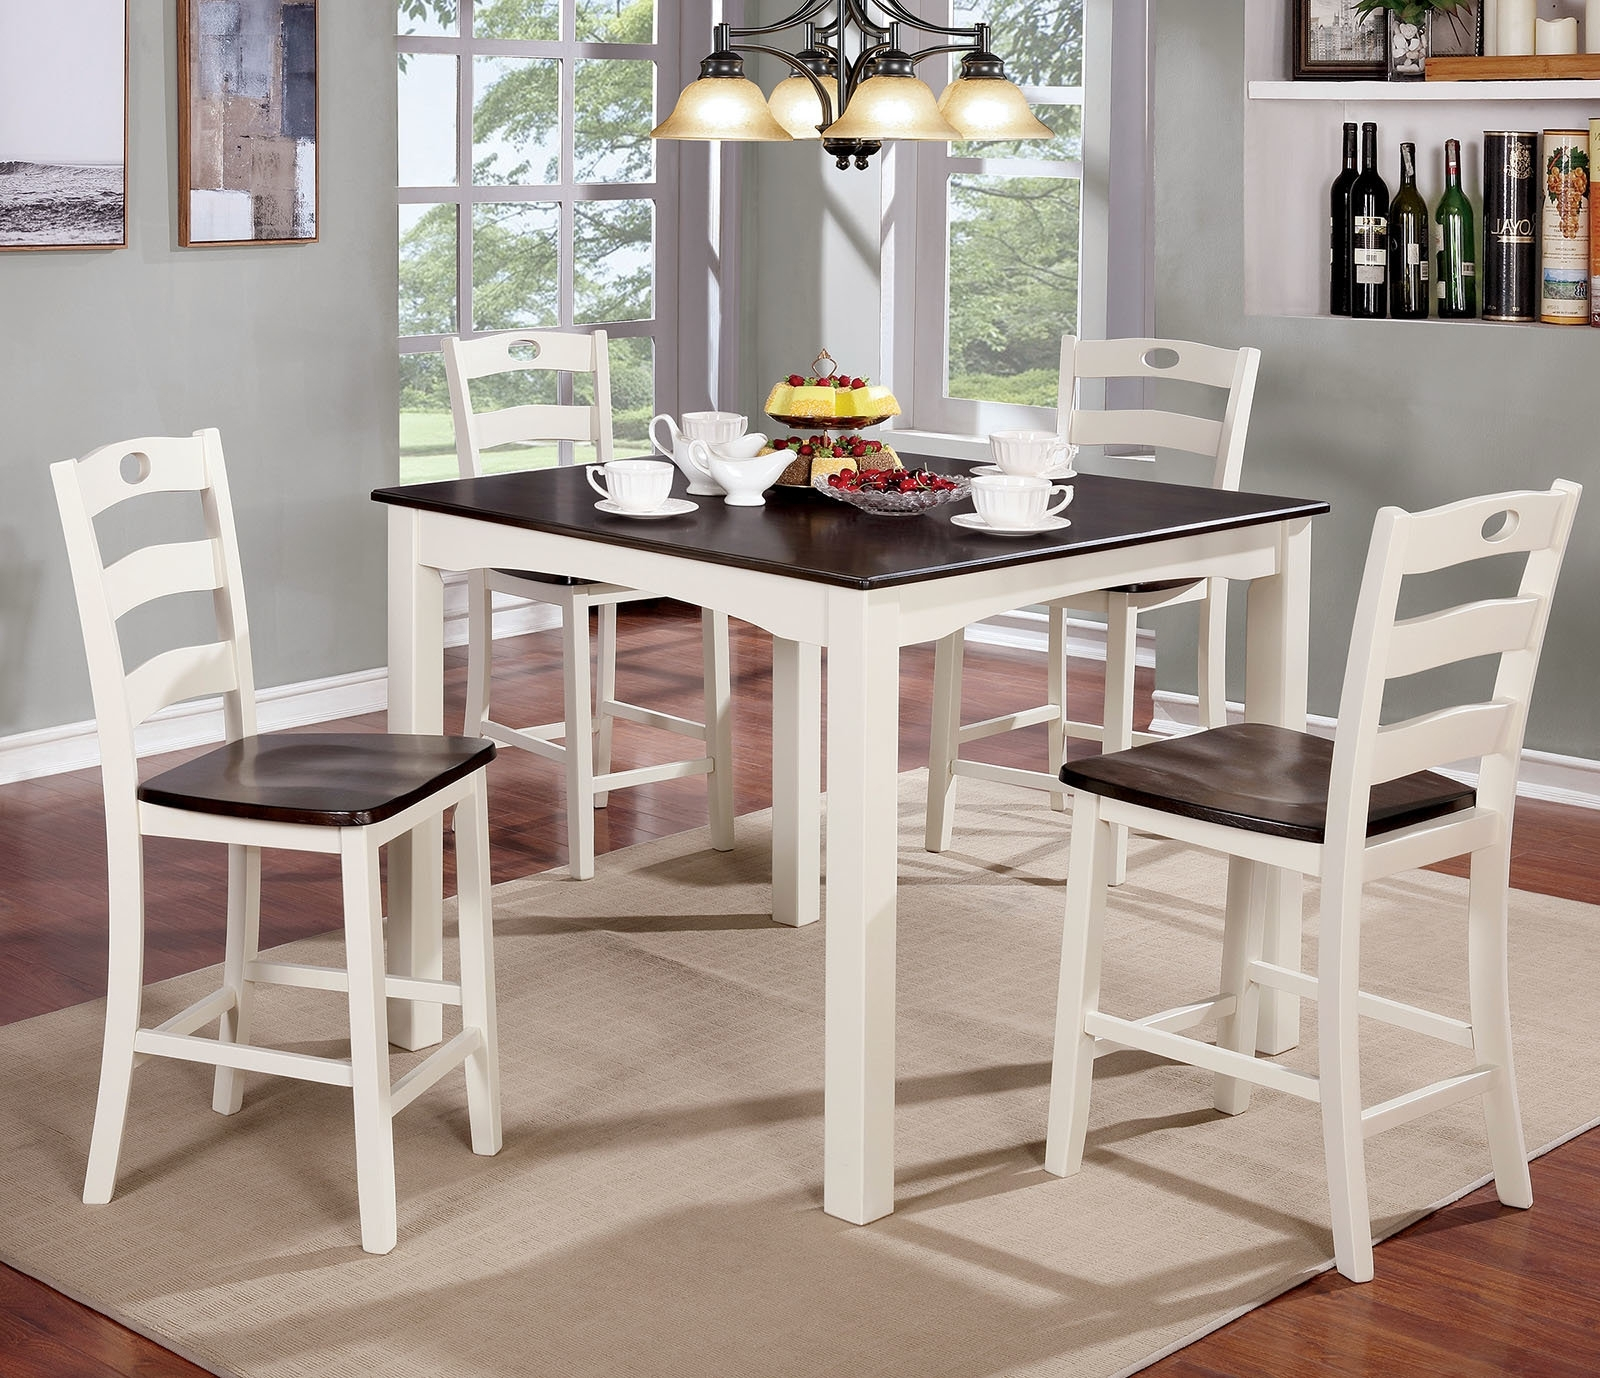 Most Recent Red Barrel Studio Harkins Wooden 5 Piece Counter Height Dining Table For Candice Ii 5 Piece Round Dining Sets (View 13 of 25)